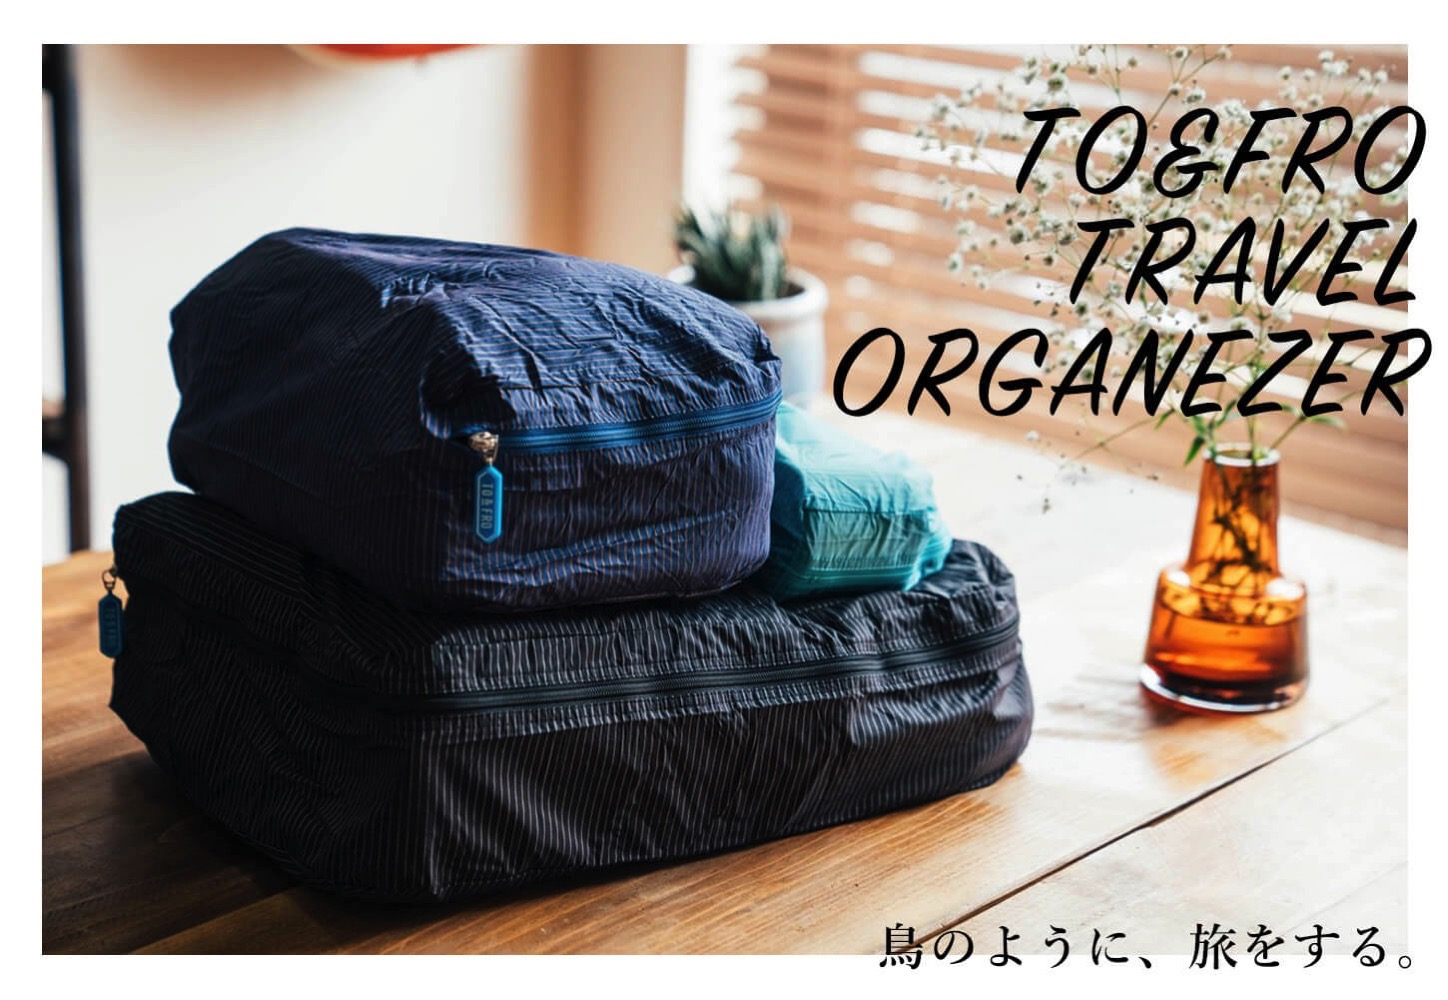 Toandfro organizer top